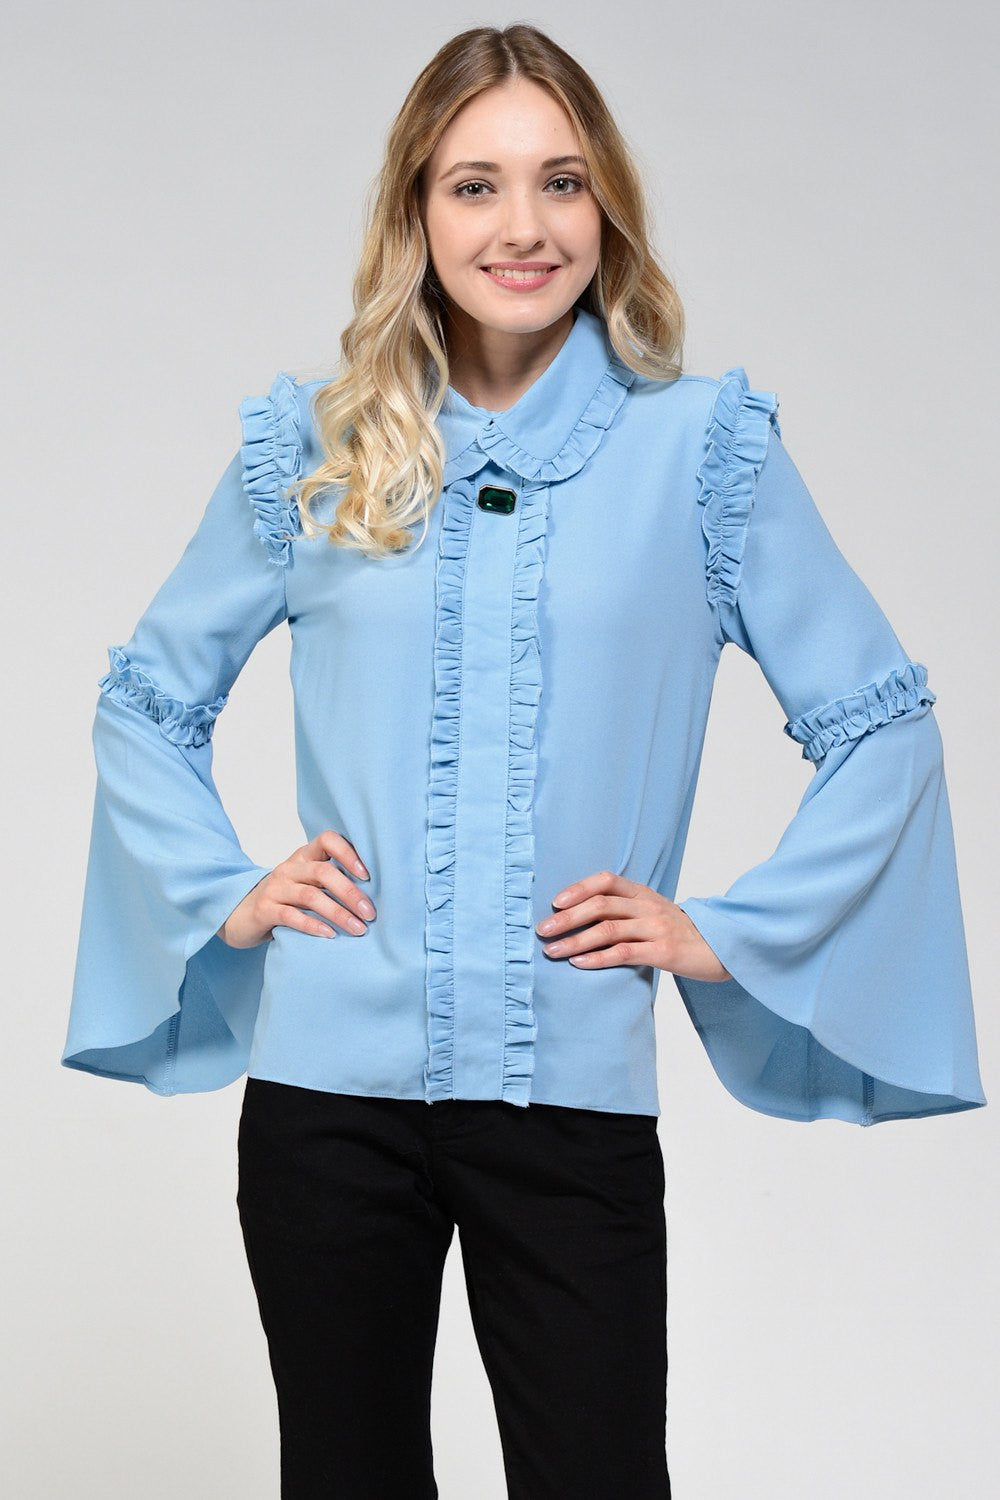 Blue Lagoon Ruffle Blouse by Sister Jane